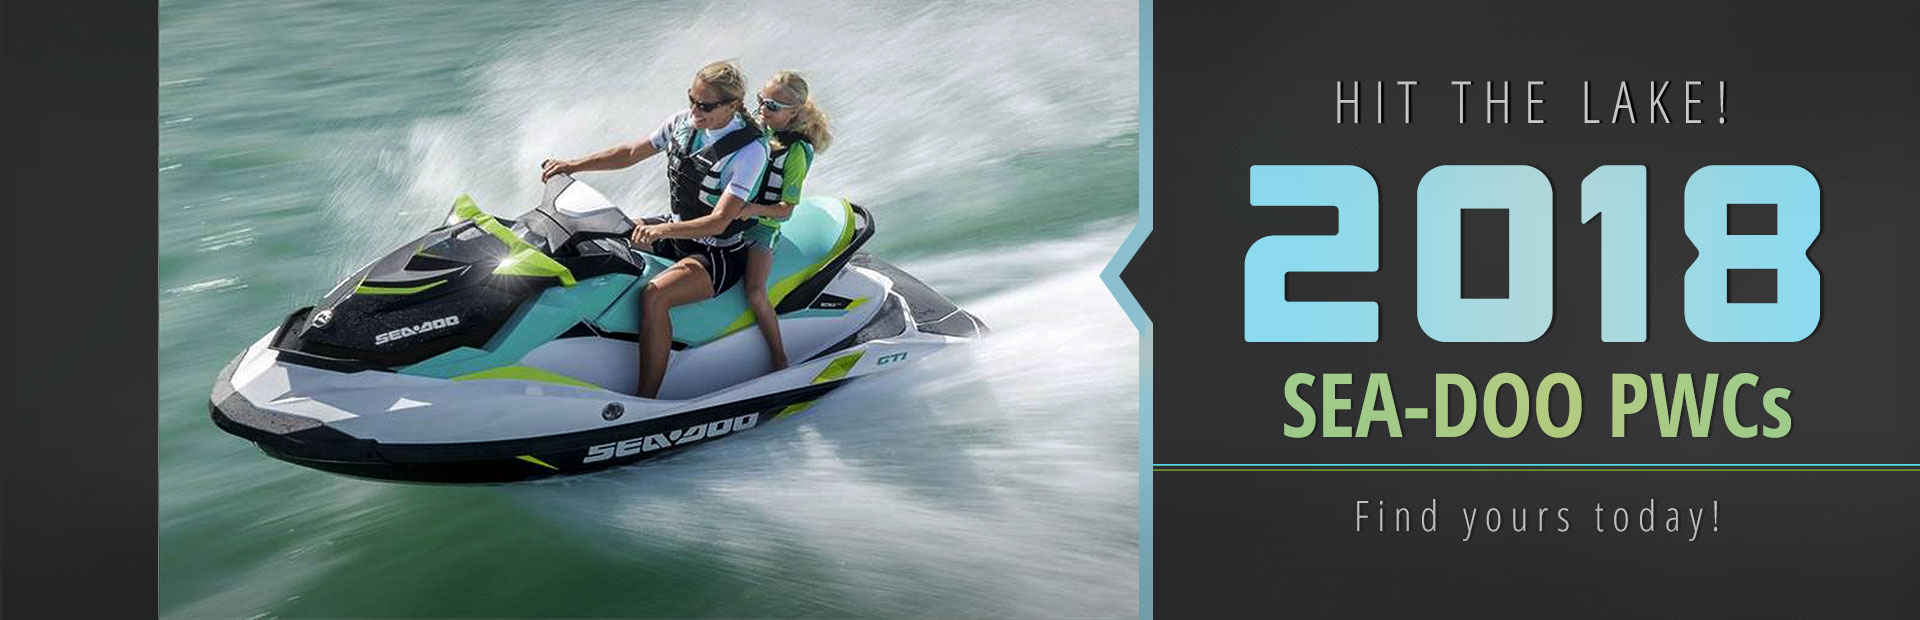 2018 Sea-Doo PWCs: Click here to view the models.